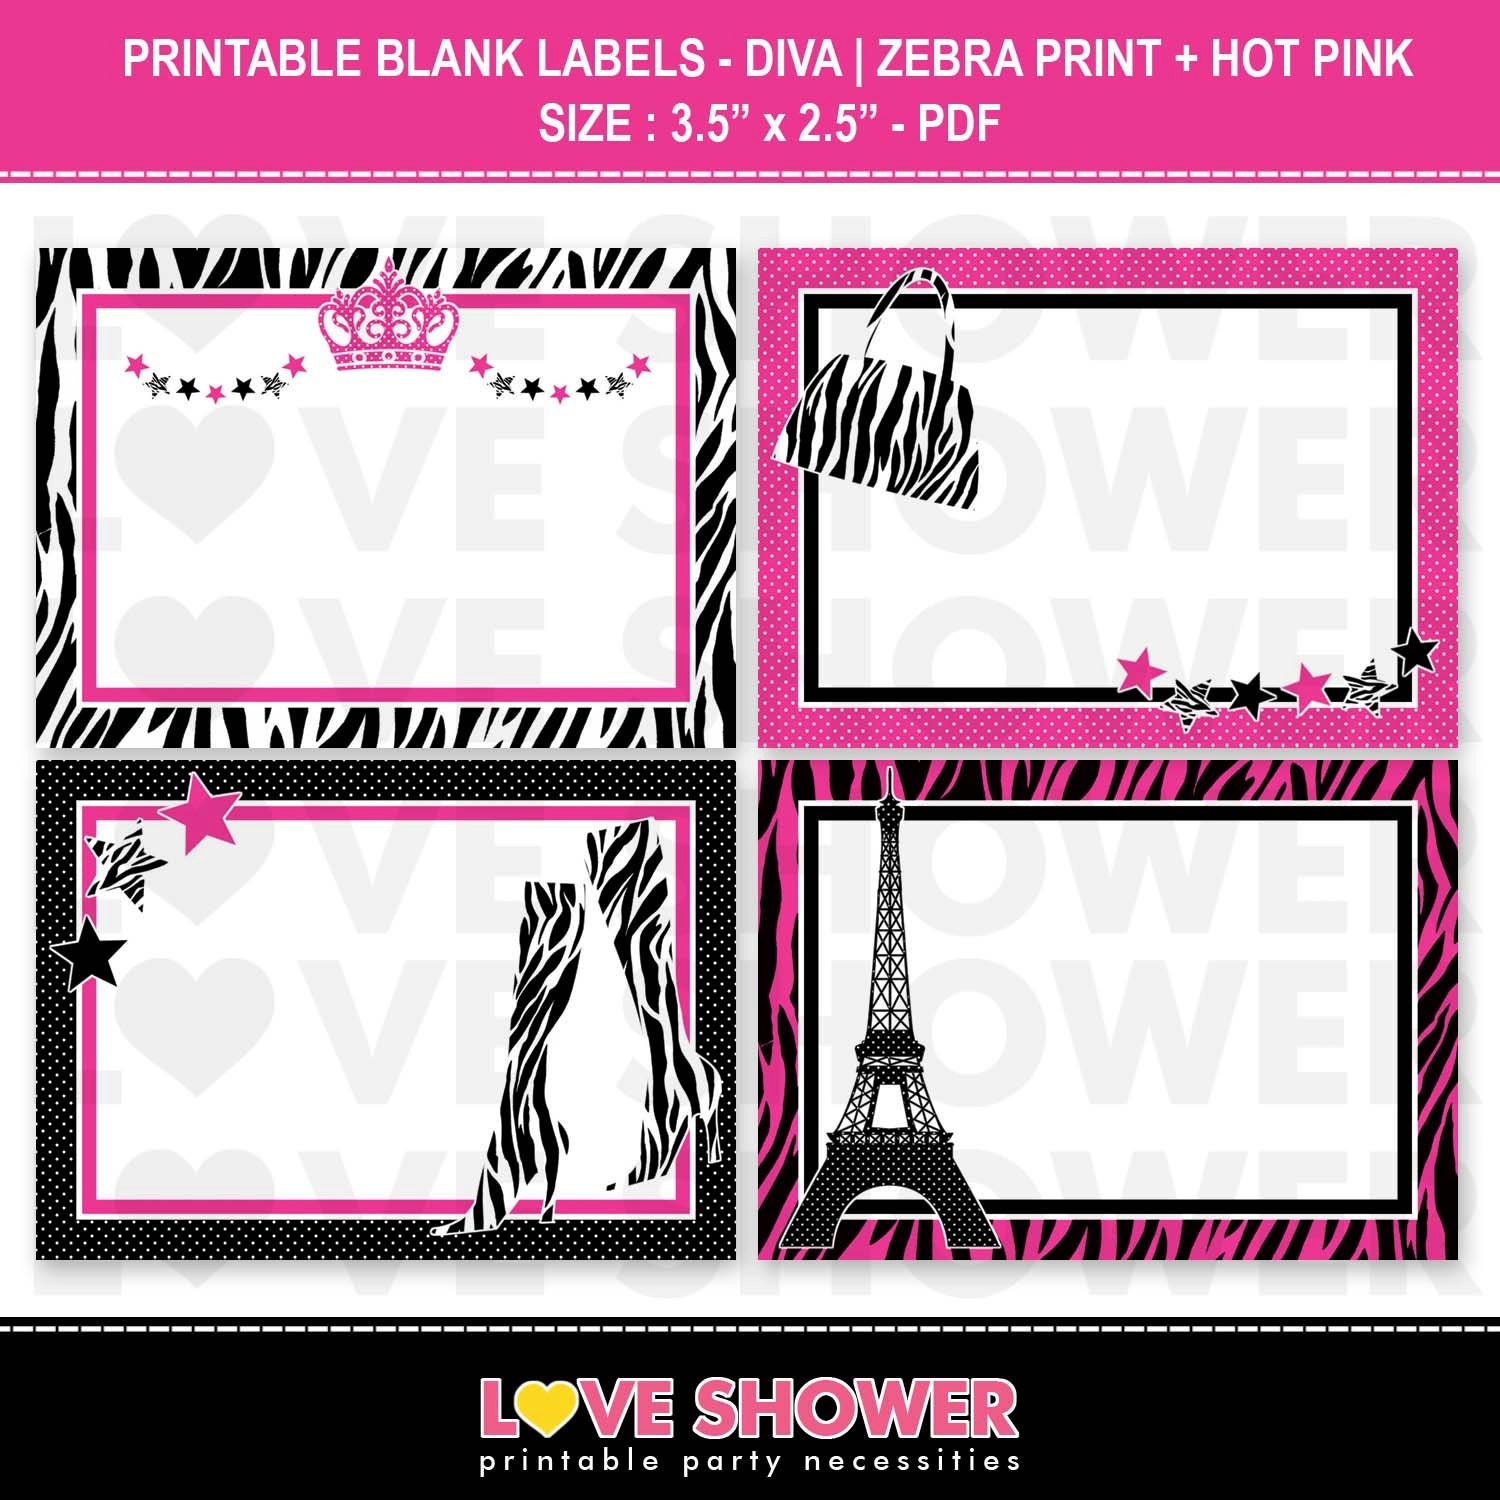 Printable Blank Labels Diva Zebra Print and Hot by LoveShower